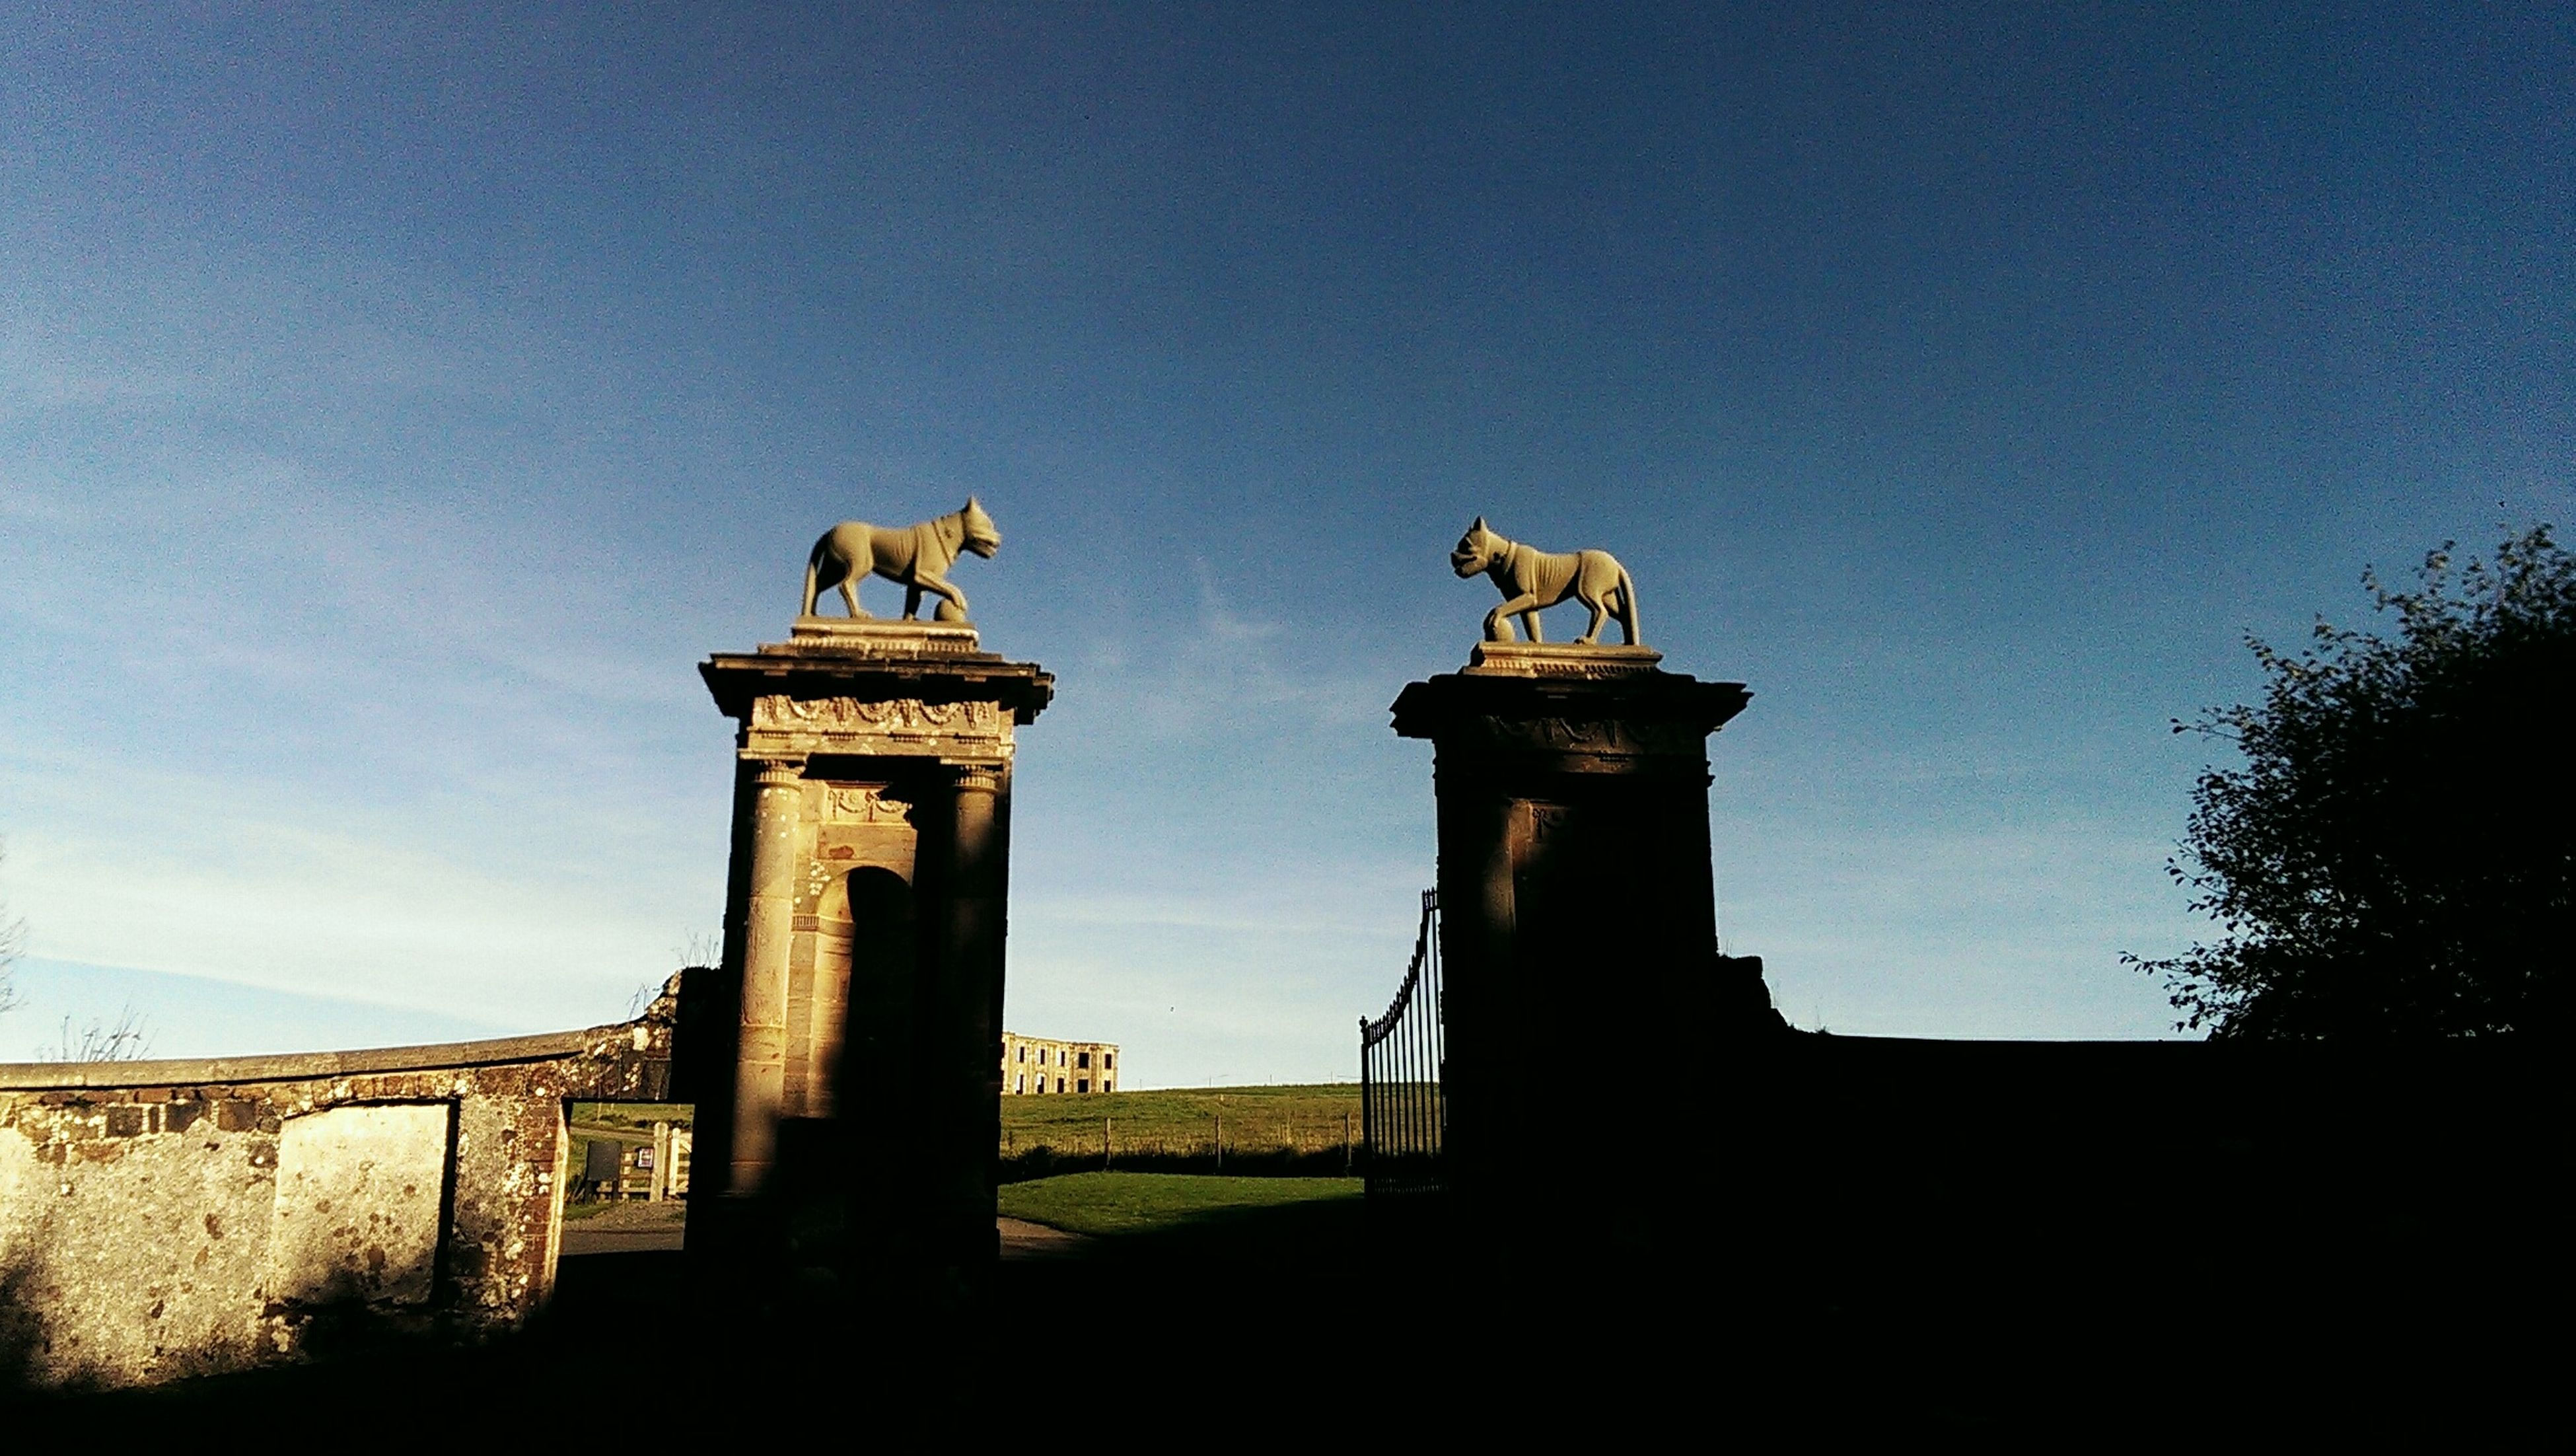 low angle view, built structure, architecture, blue, clear sky, sky, copy space, animal themes, building exterior, history, statue, one animal, outdoors, sculpture, no people, day, bird, wildlife, architectural column, sunlight